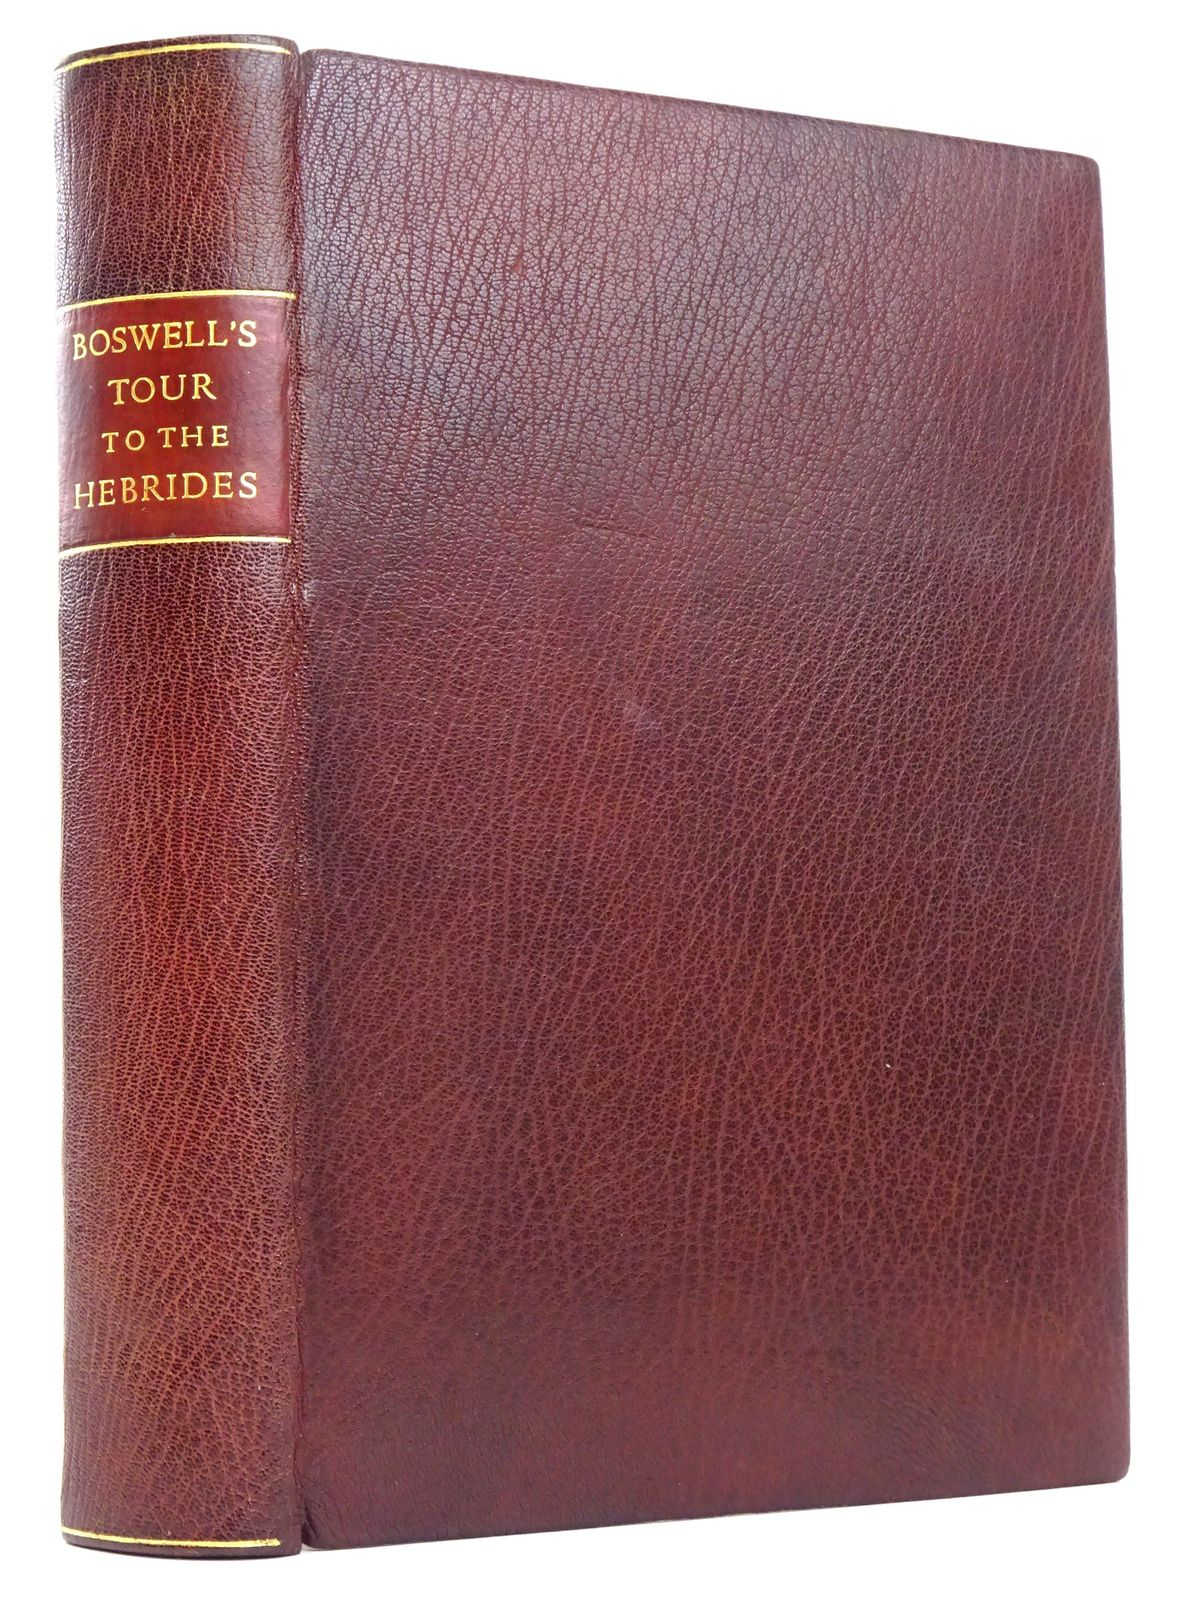 Photo of BOSWELL'S JOURNAL OF A TOUR TO THE HEBRIDES WITH SAMUEL JOHNSON written by Boswell, James published by William Heinemann Ltd. (STOCK CODE: 1818354)  for sale by Stella & Rose's Books